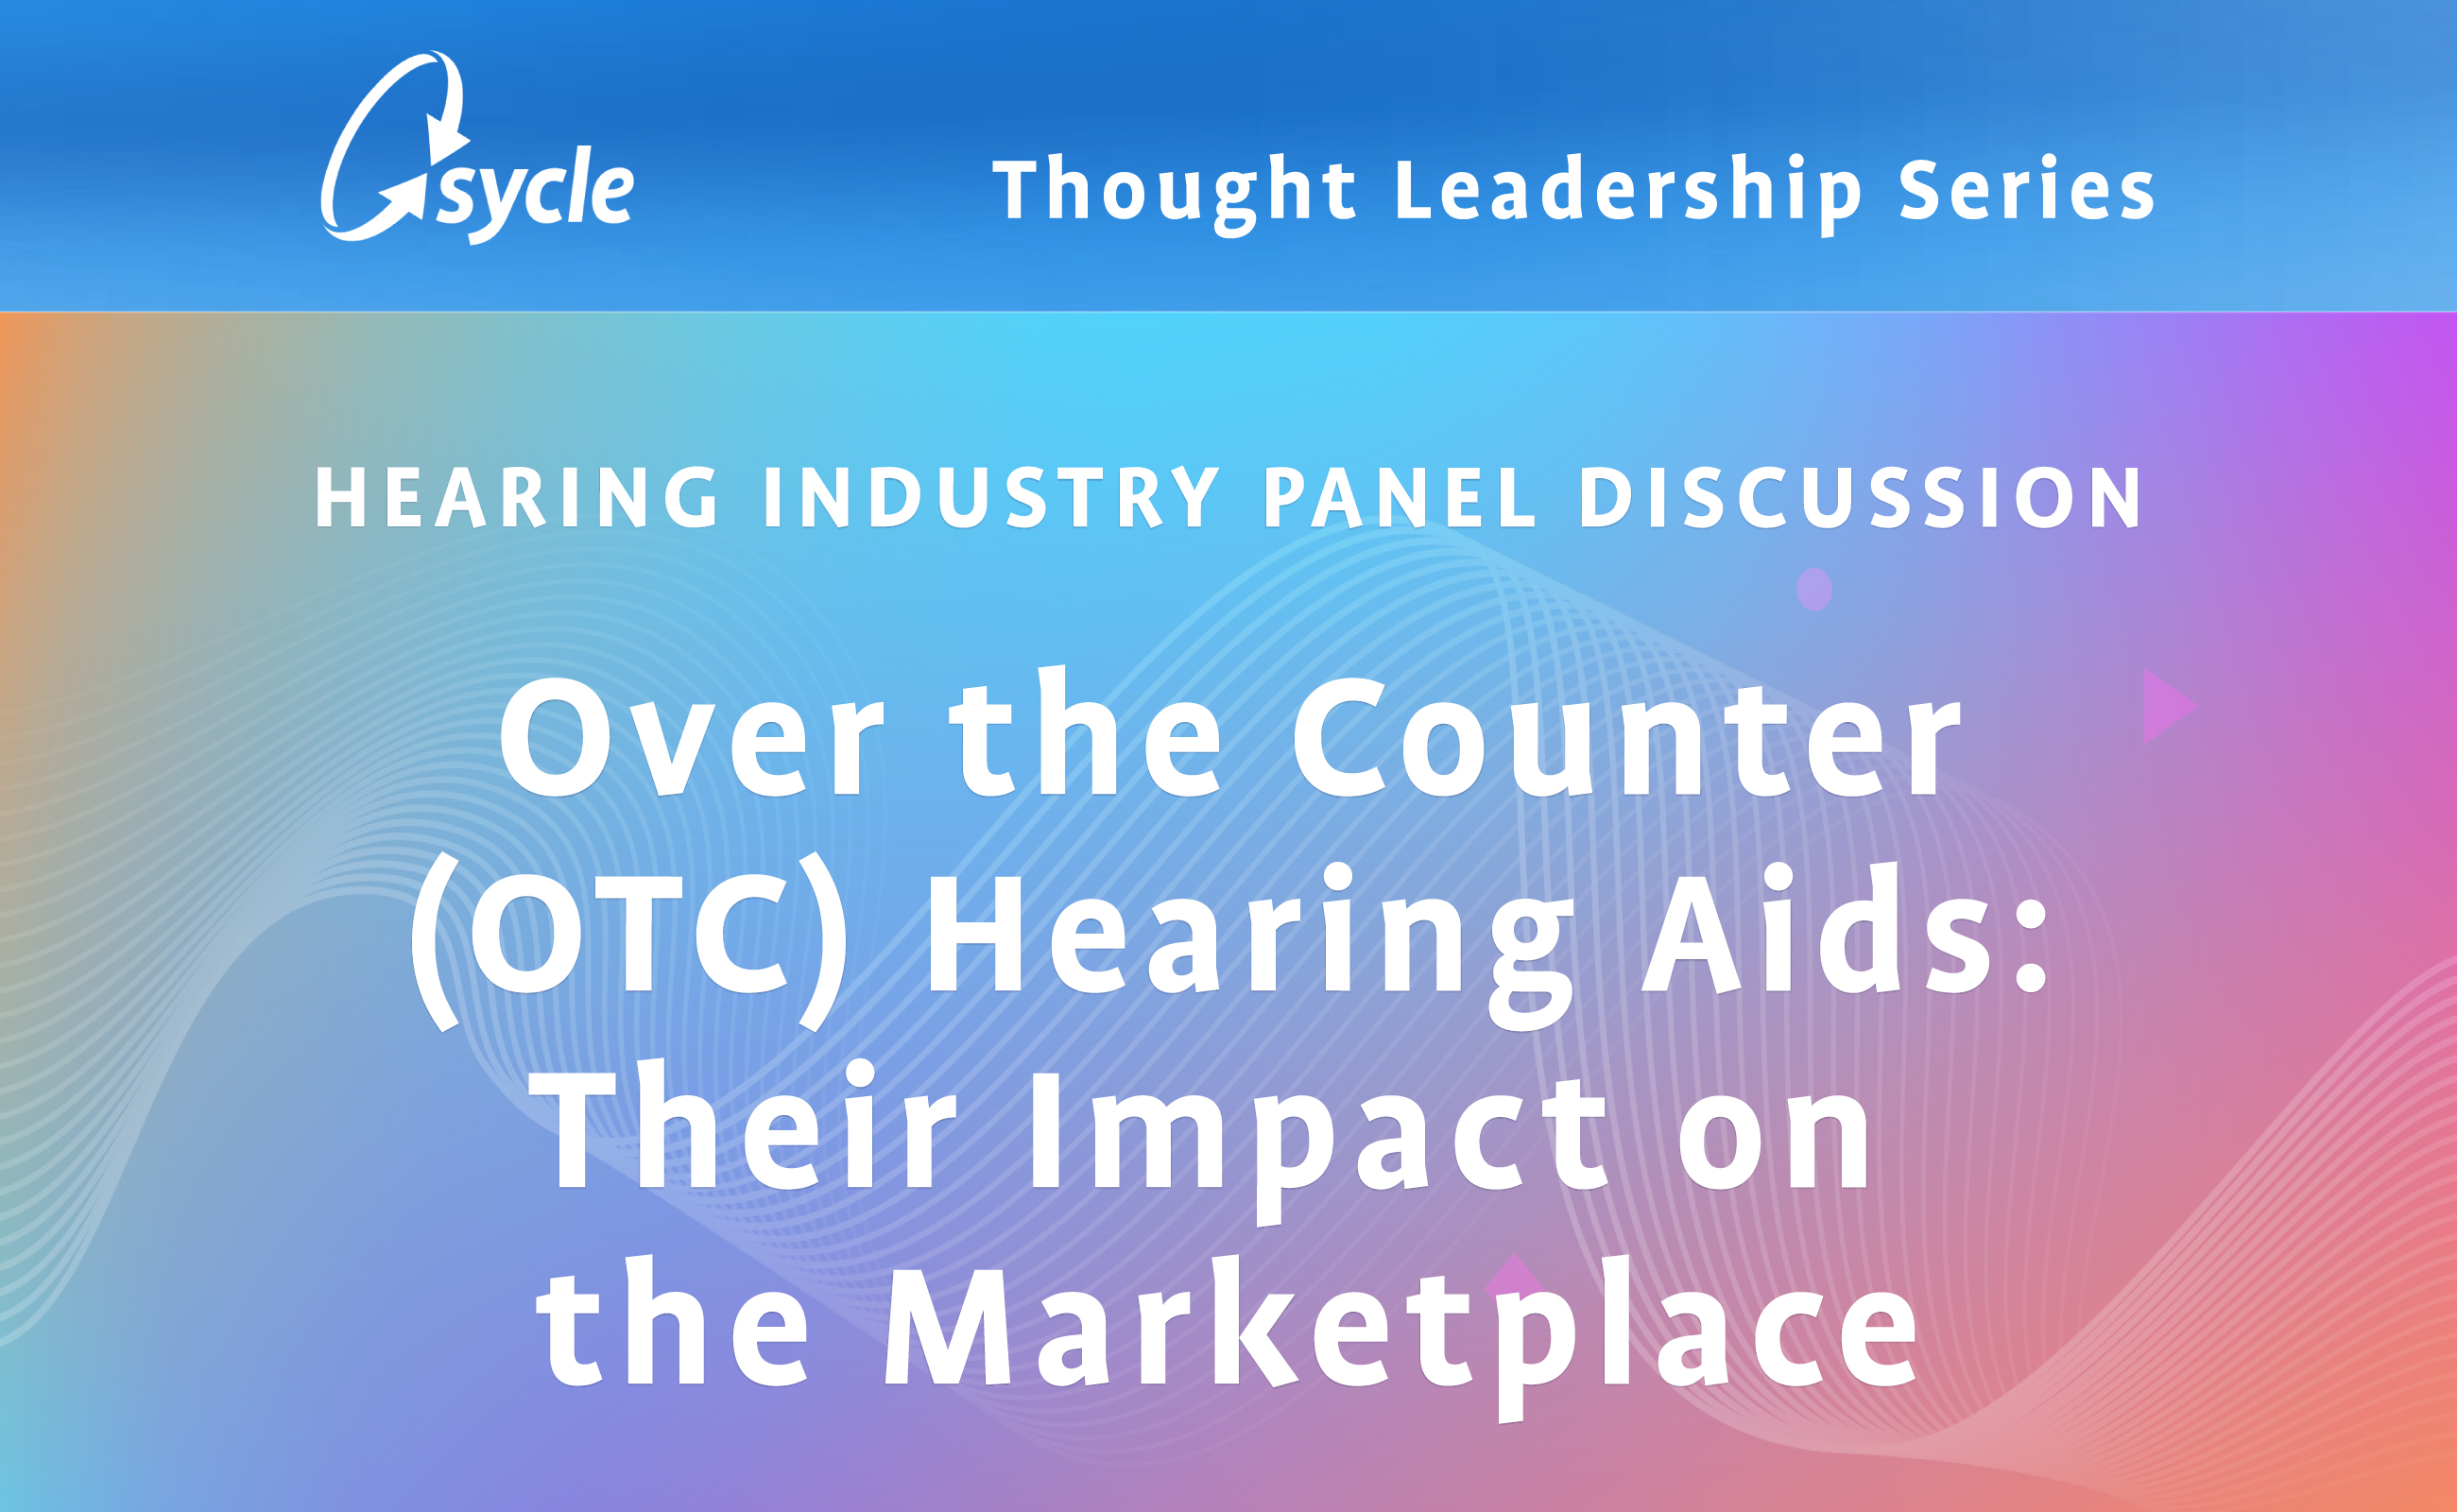 PANEL DISCUSSION: Over the Counter (OTC) Hearing Aids image